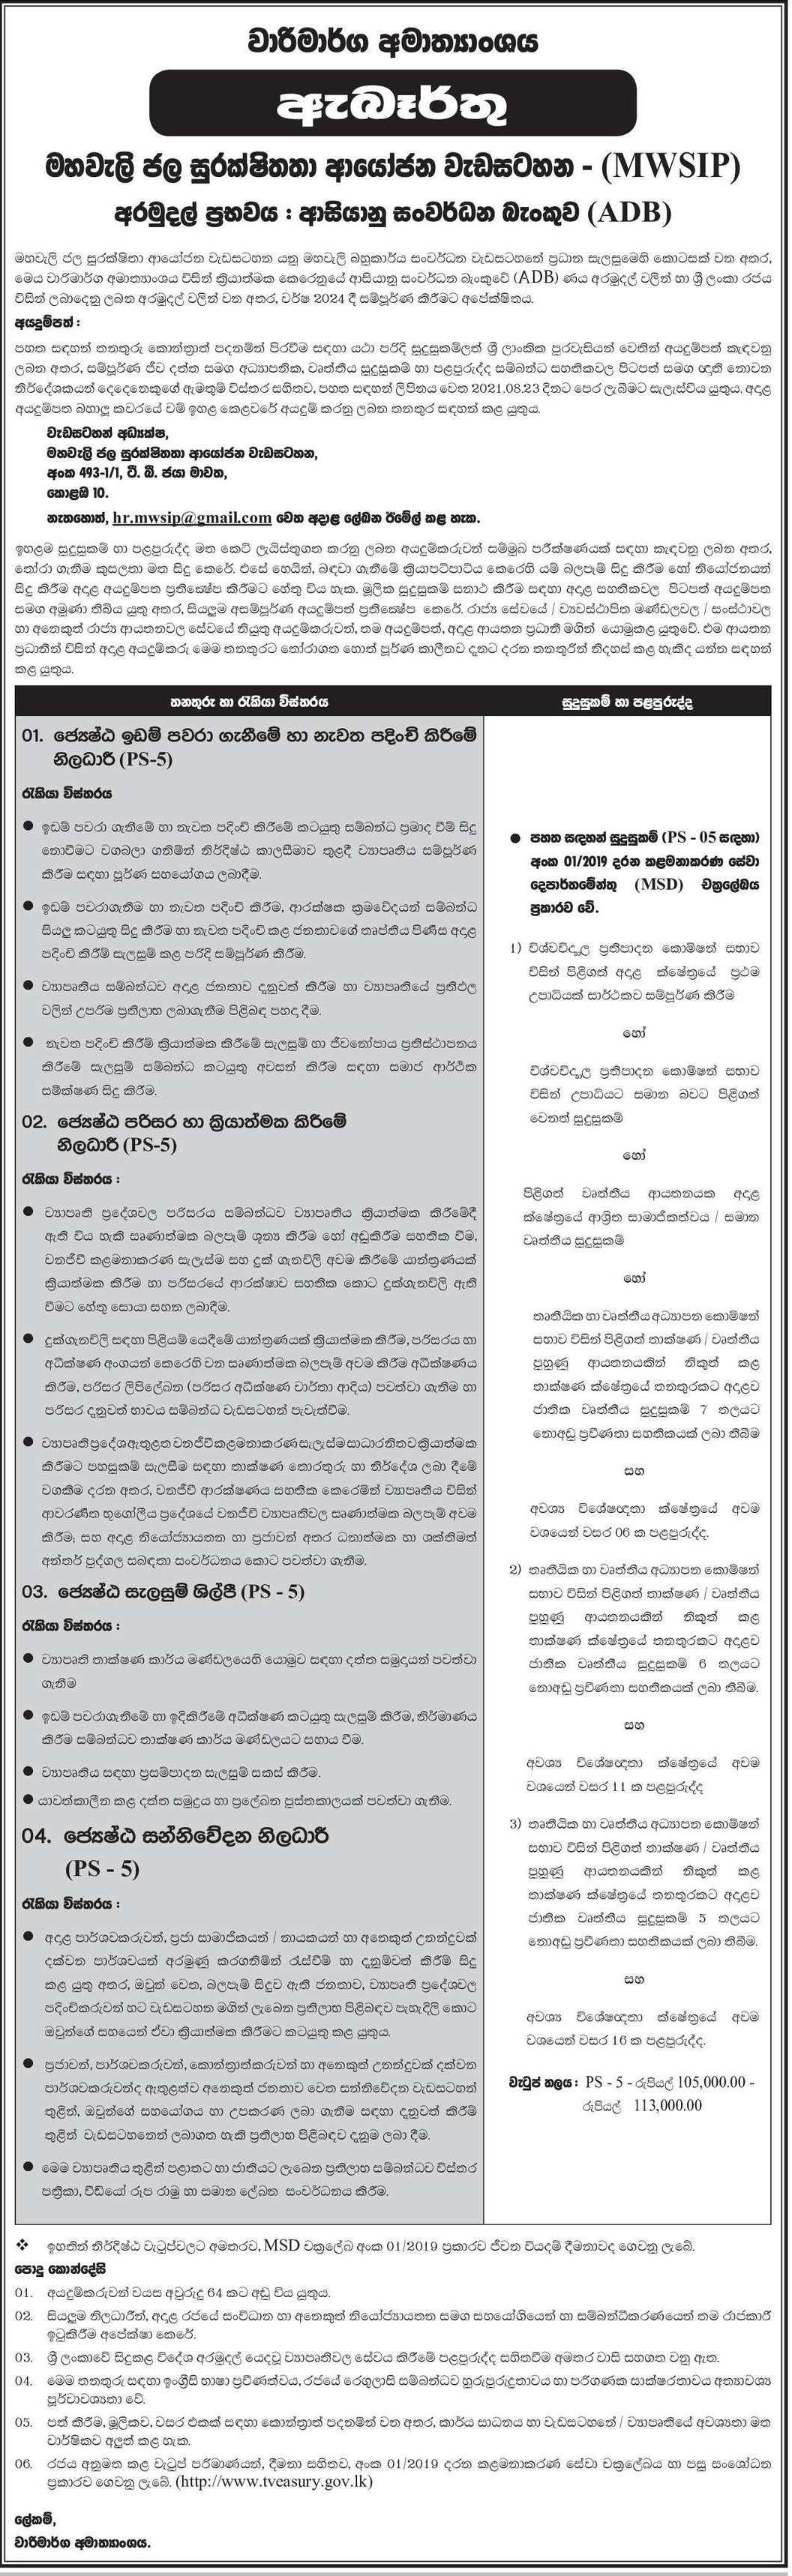 Senior Land acquisition and resettlement officer, Senior Environment and implementation officer, Senior Draughtsman, Senior Communication officer